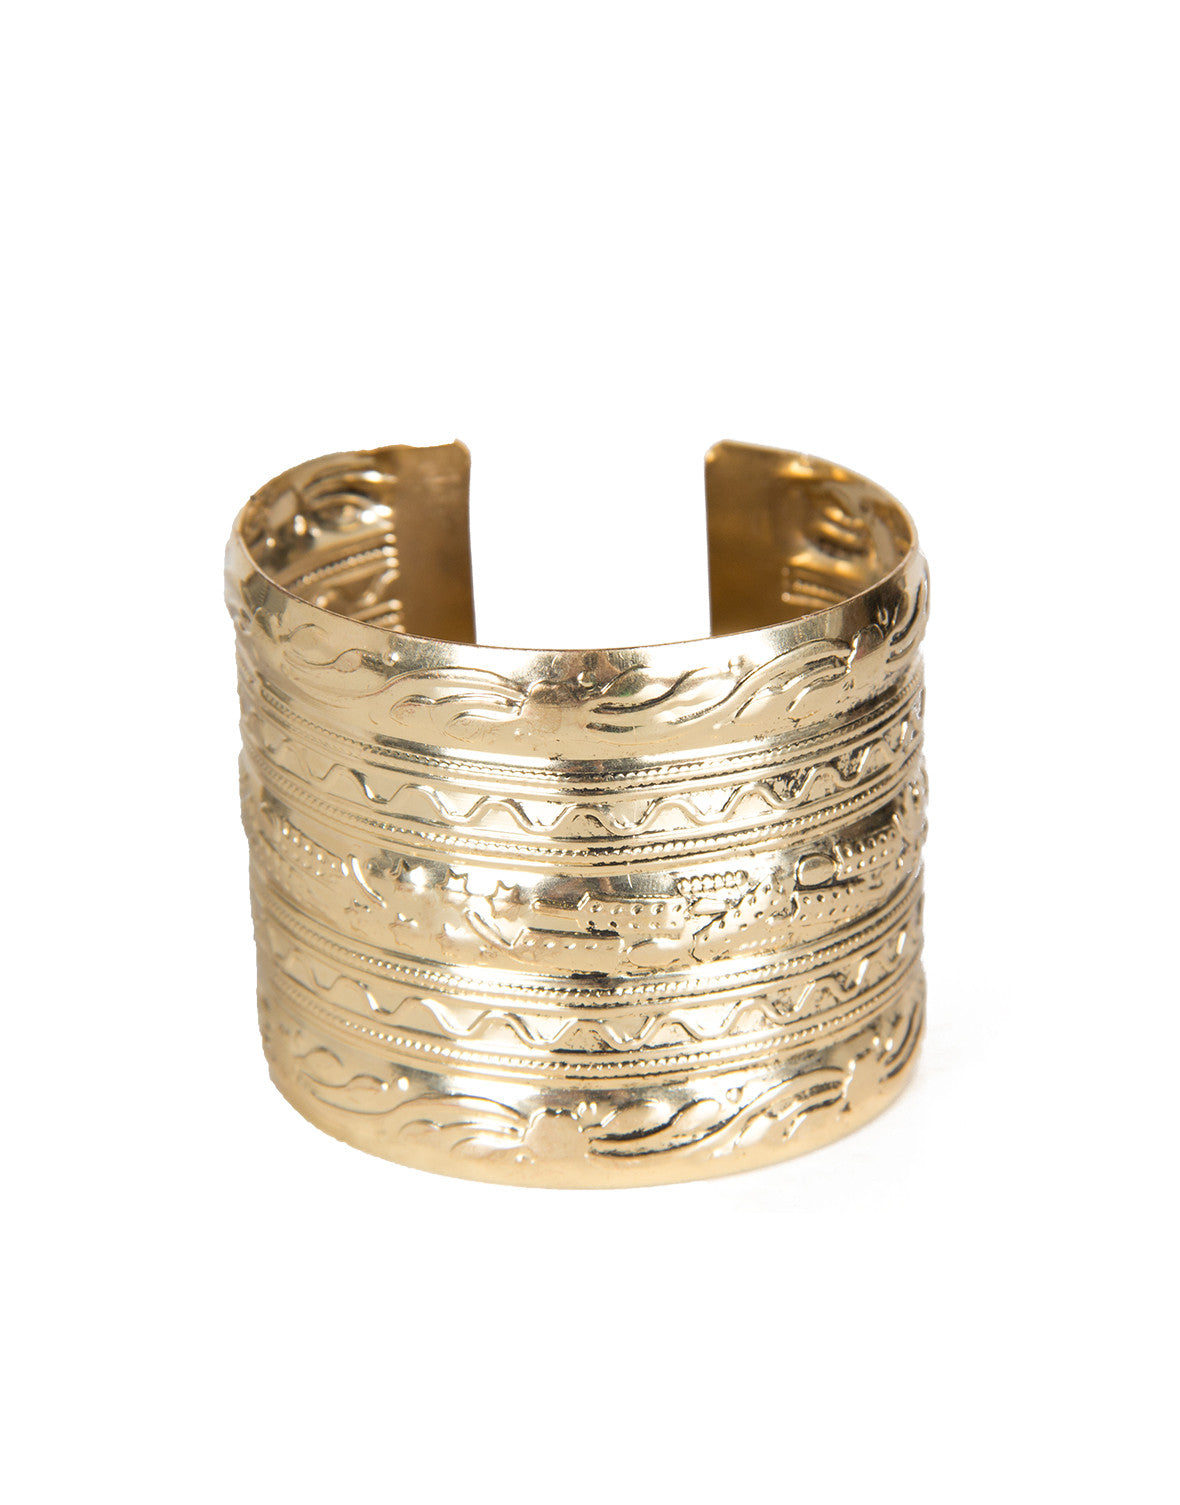 Textured Antique Cuff Bracelet - Gold